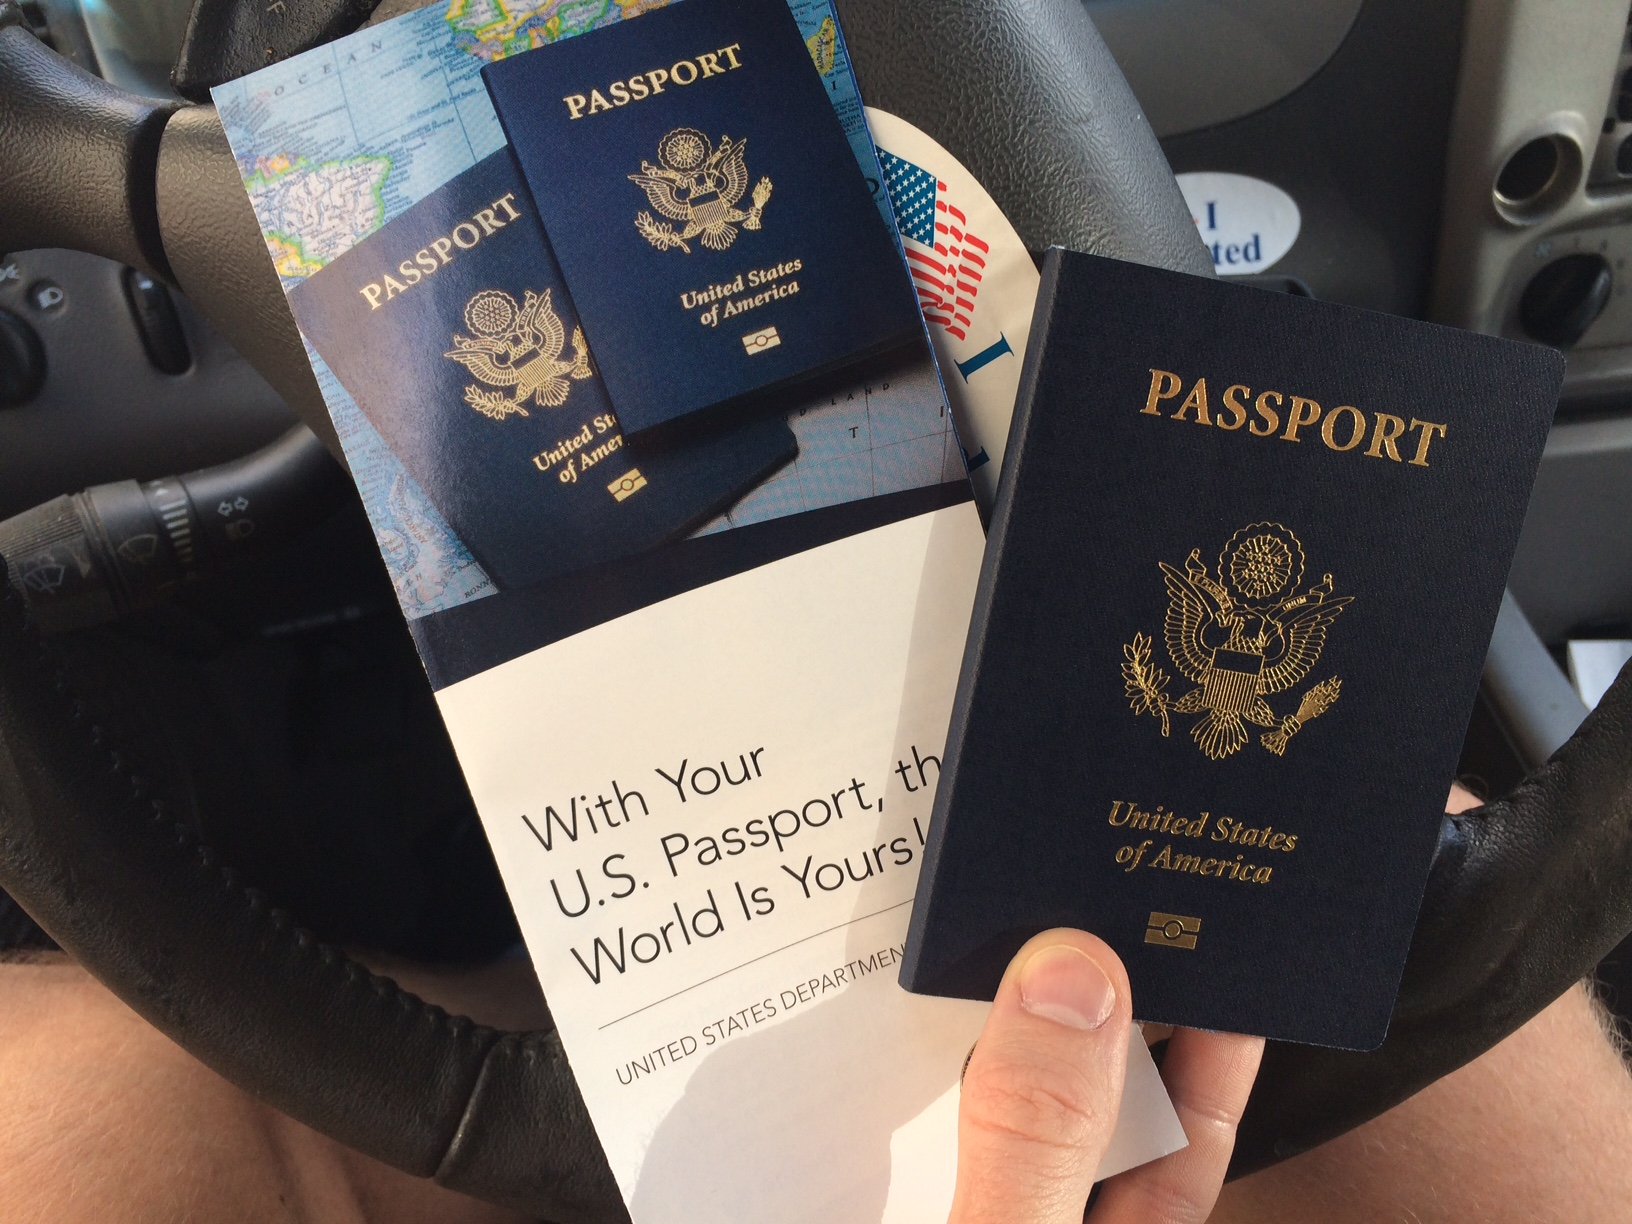 Once you get a New Passport, there are 5 things to do ...